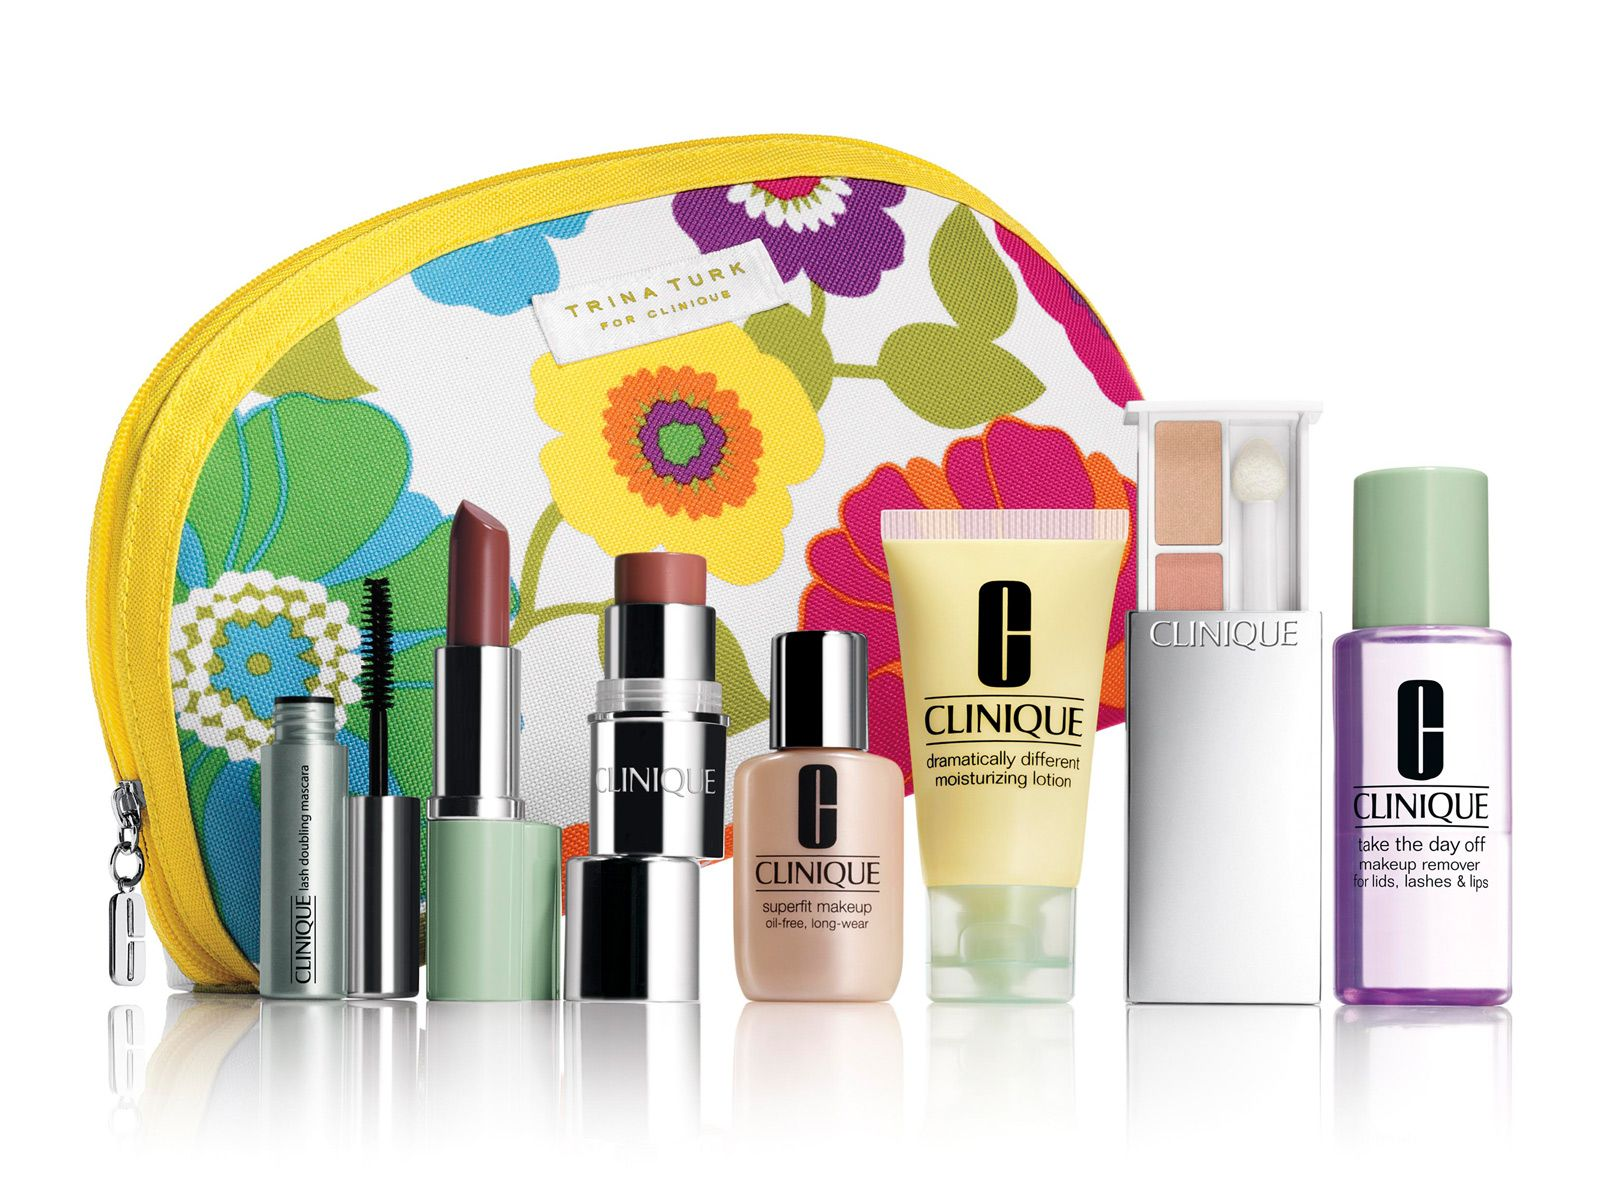 Clinique gift collections